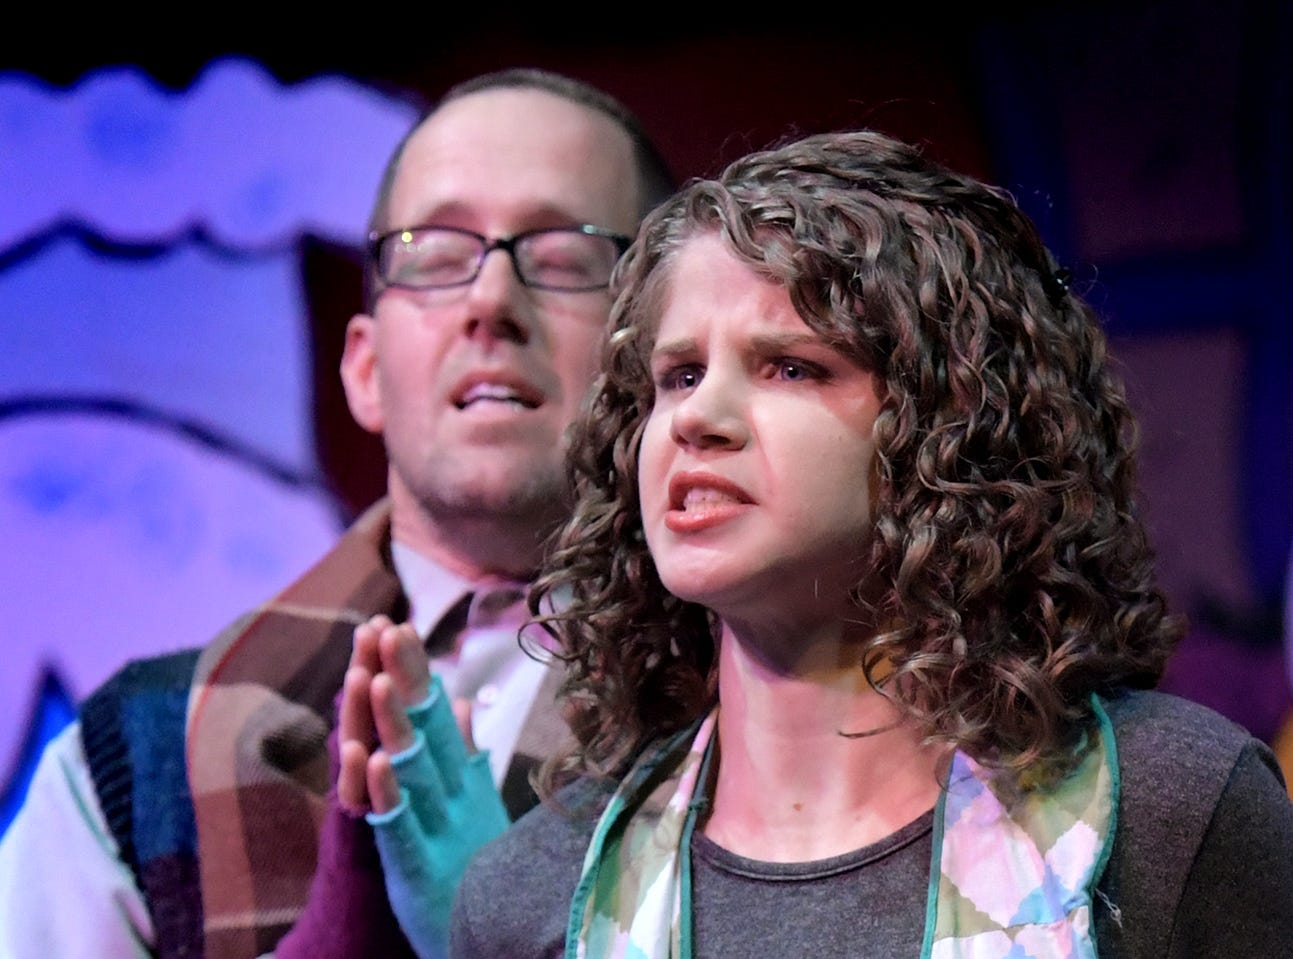 "Eddie Baer of York Township and Kayla Nicholas of Lower Windsor Township play Bob Cratchit and wife during a dress rehearsal for ""A Seussified Christmas Carol"" at DreamWrights Tuesday, Dec. 4, 2018. The dual-cast performance presents twelve shows from Dec. 7 through 22 with matinee and evening start times. For show times and dates, go to dreamwrights.org. Bill Kalina photo"